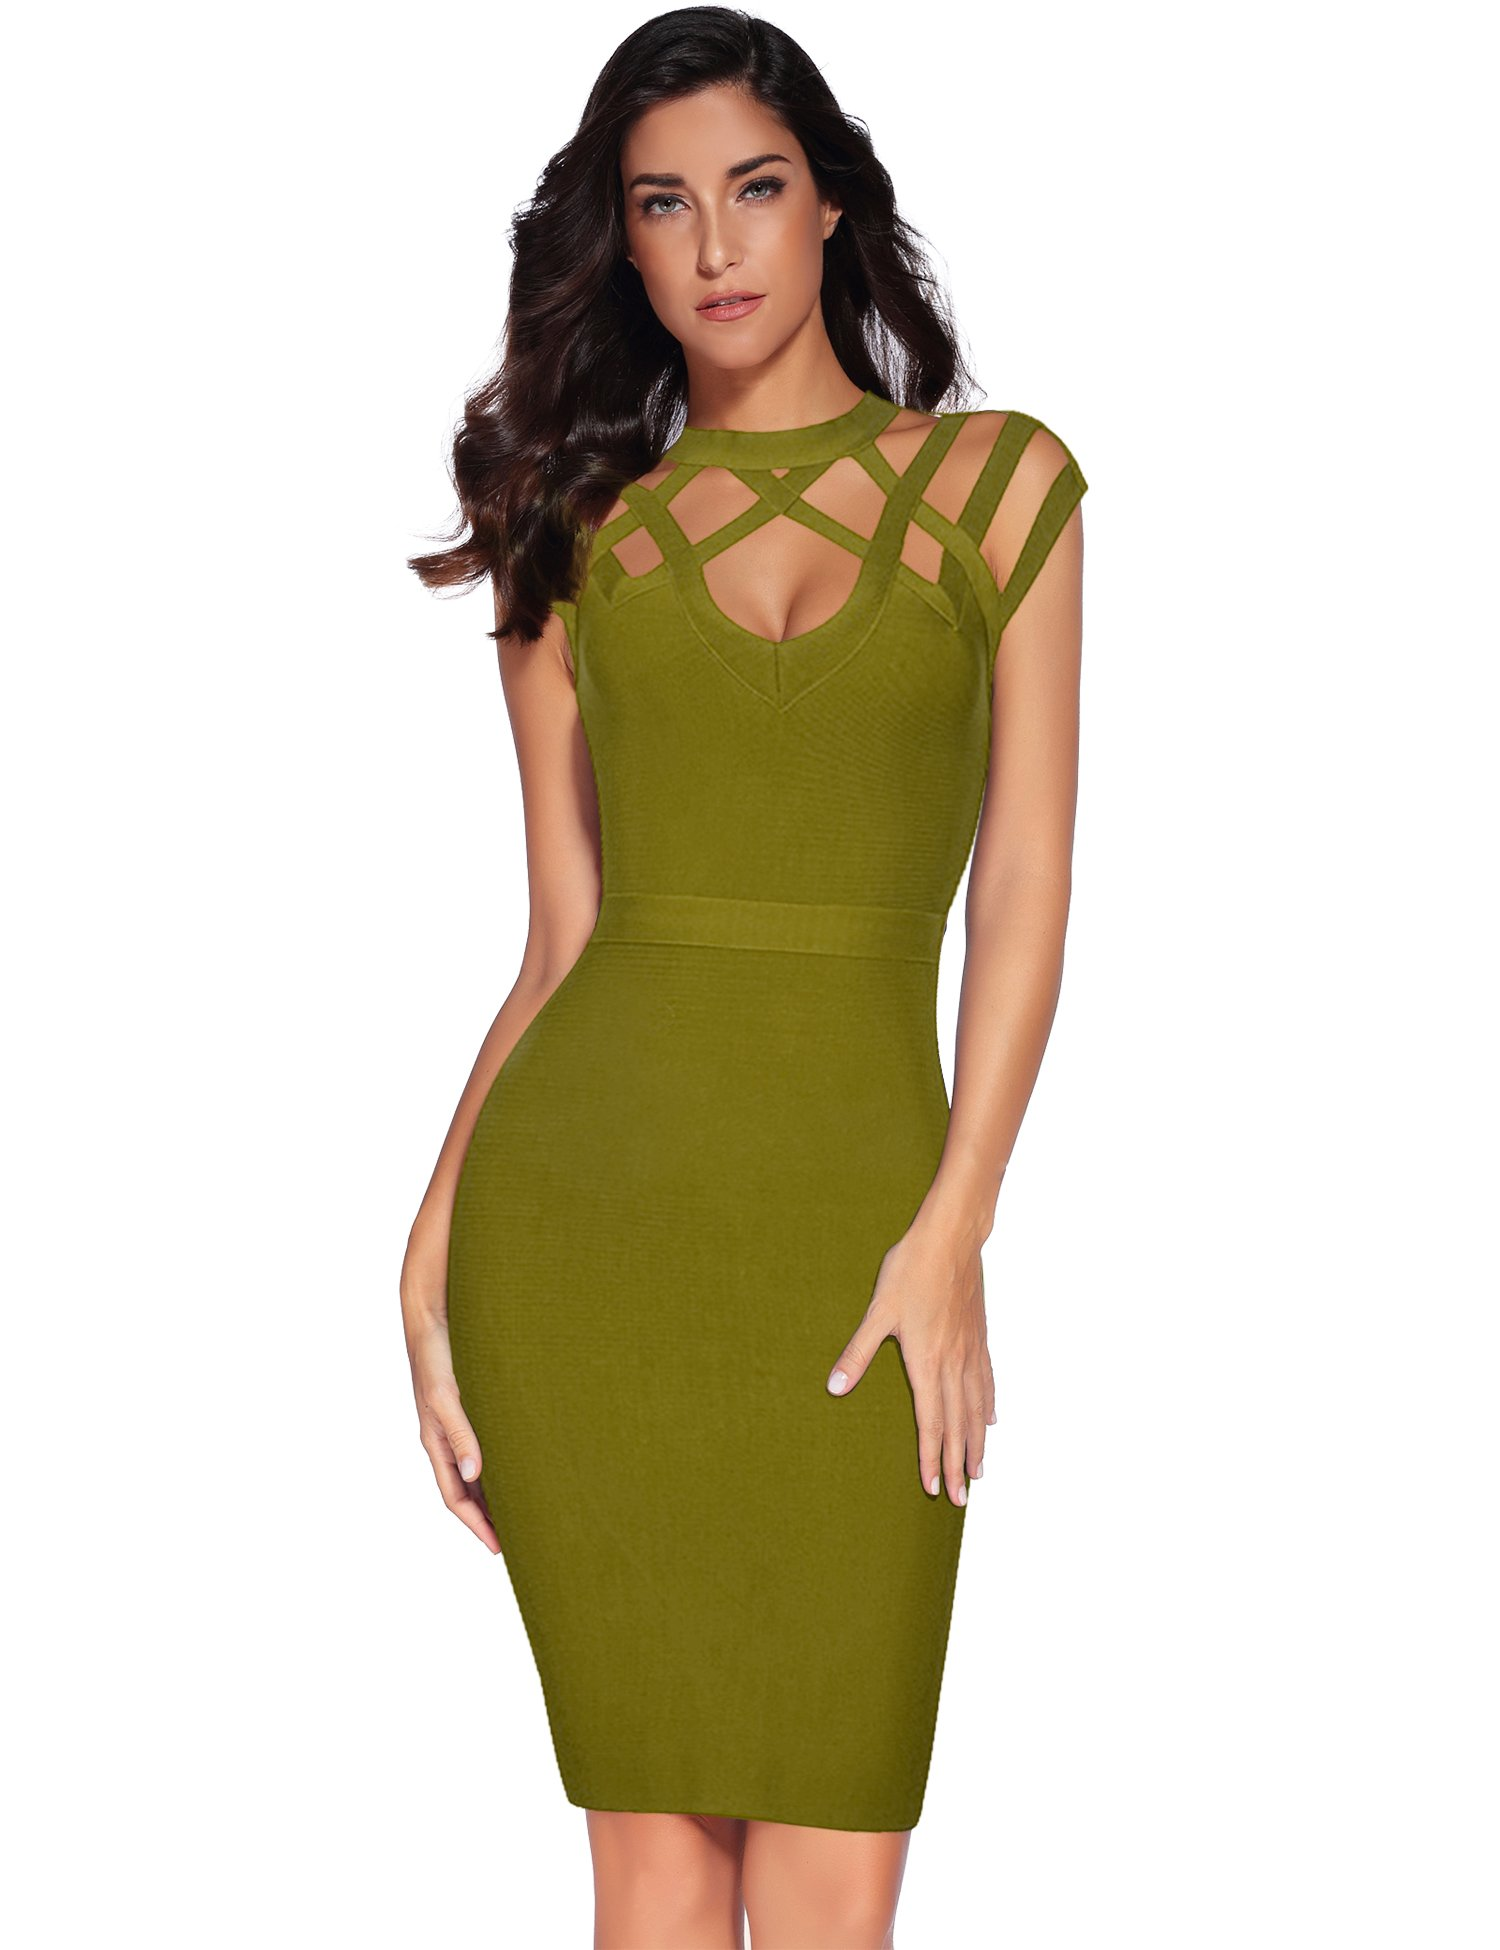 Available at Amazon: Meilun Women's Rayon Hight Neck Cut Out Bandage Bodycon Dresses